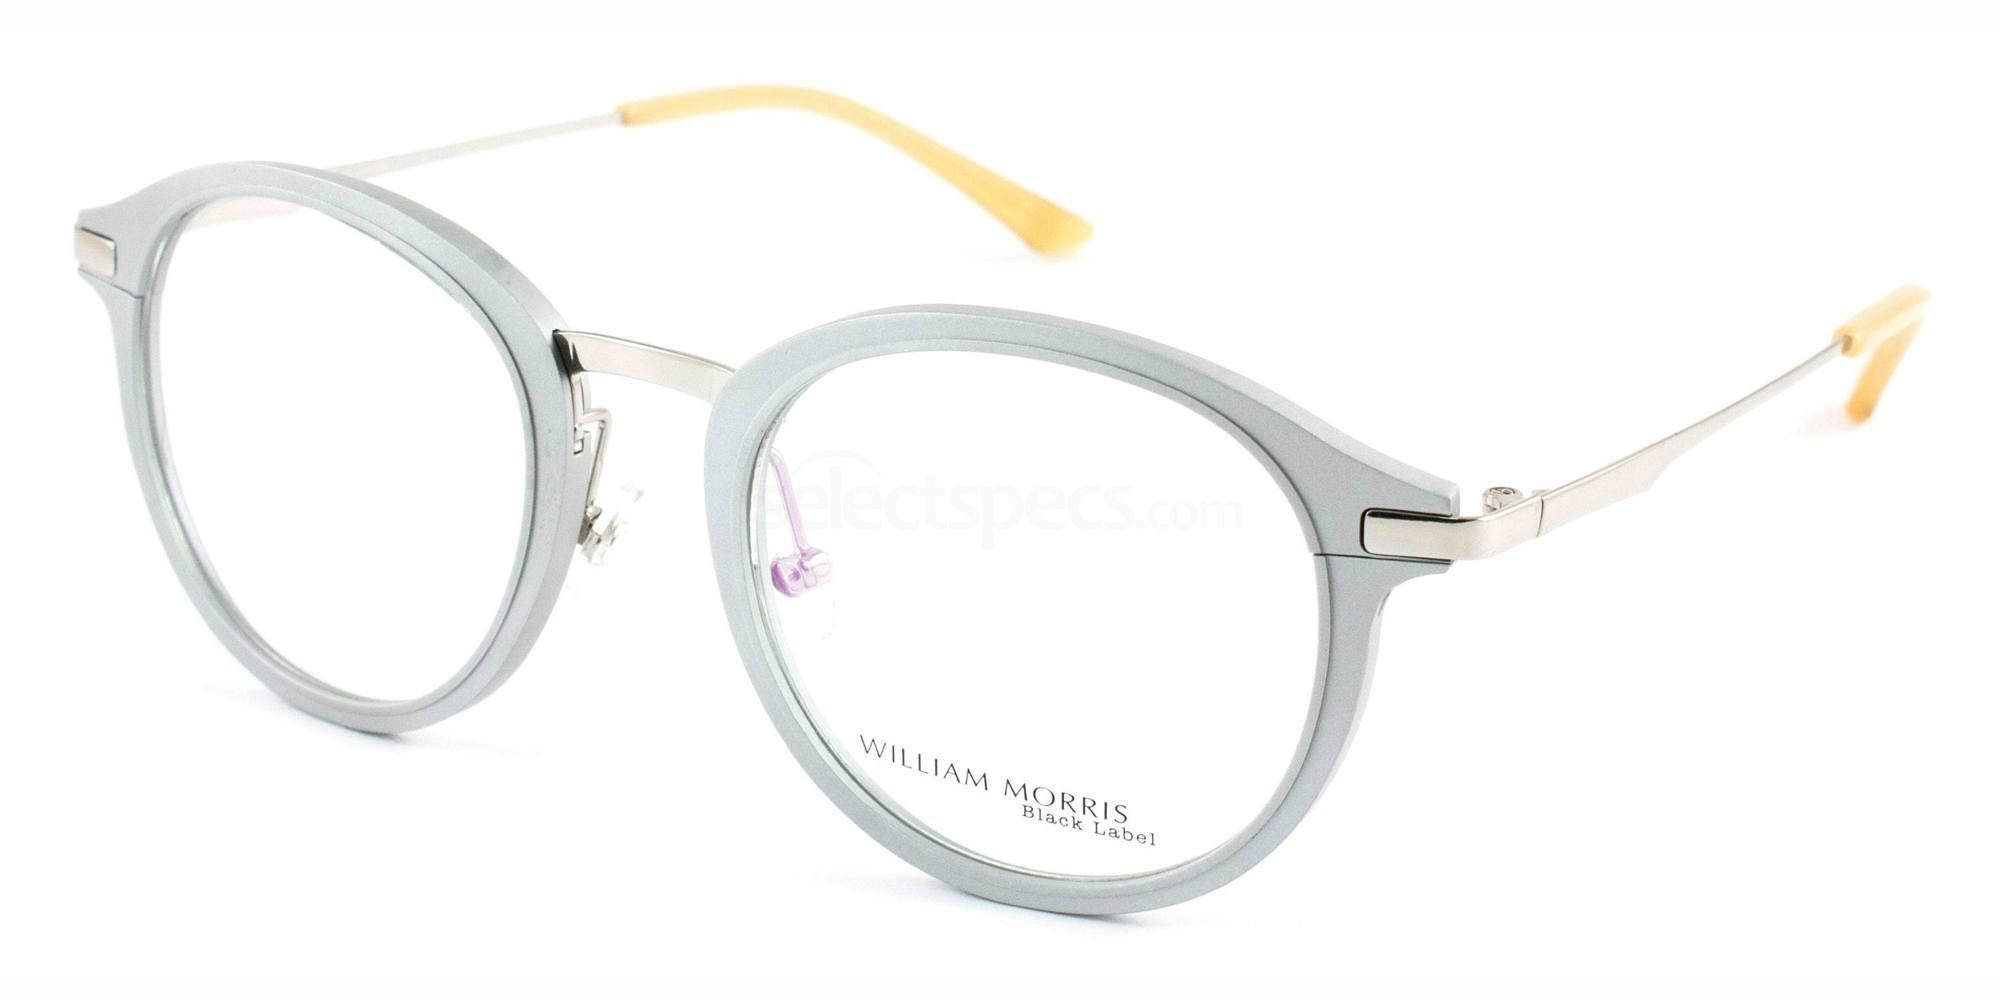 C1 BL301 Glasses, William Morris Black Label